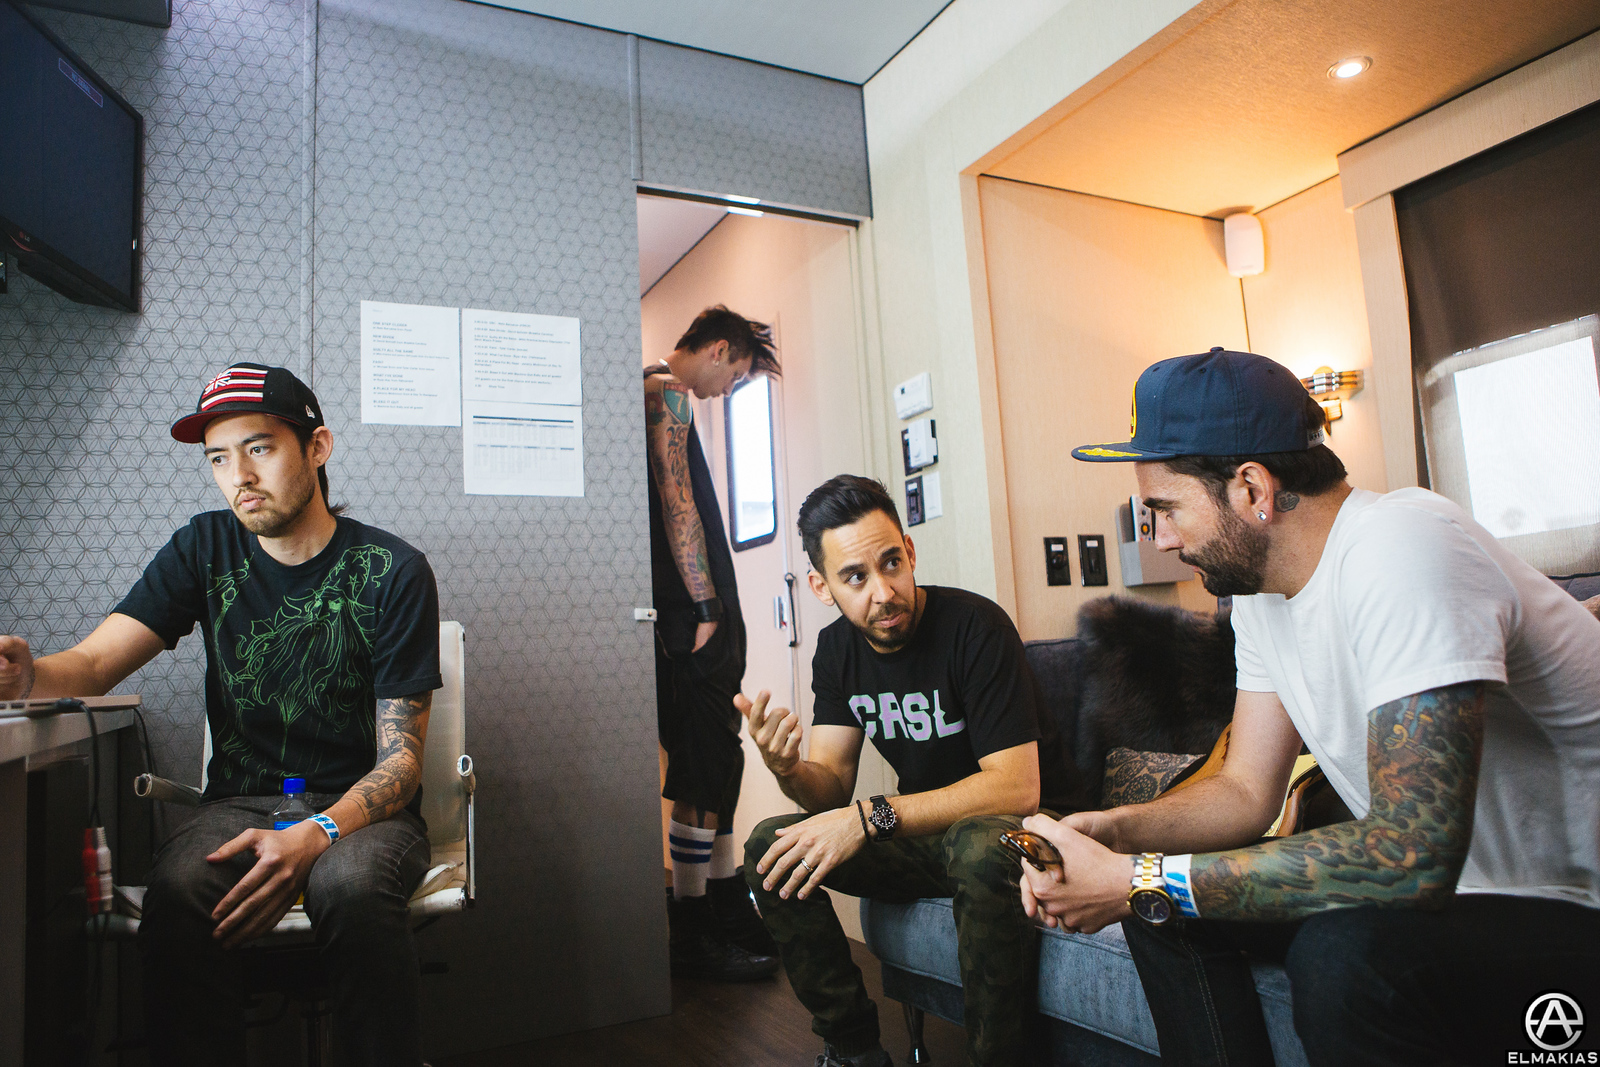 Jeremy warming up with Mike Shinoda of Linkin Park